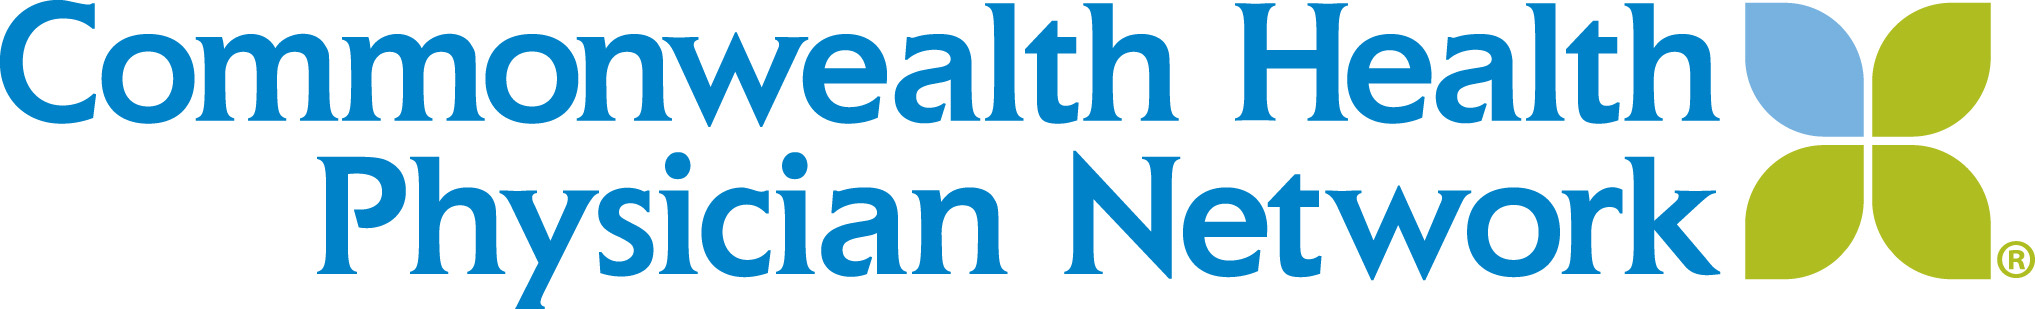 Commonwealth Health Physician Network (NEW)